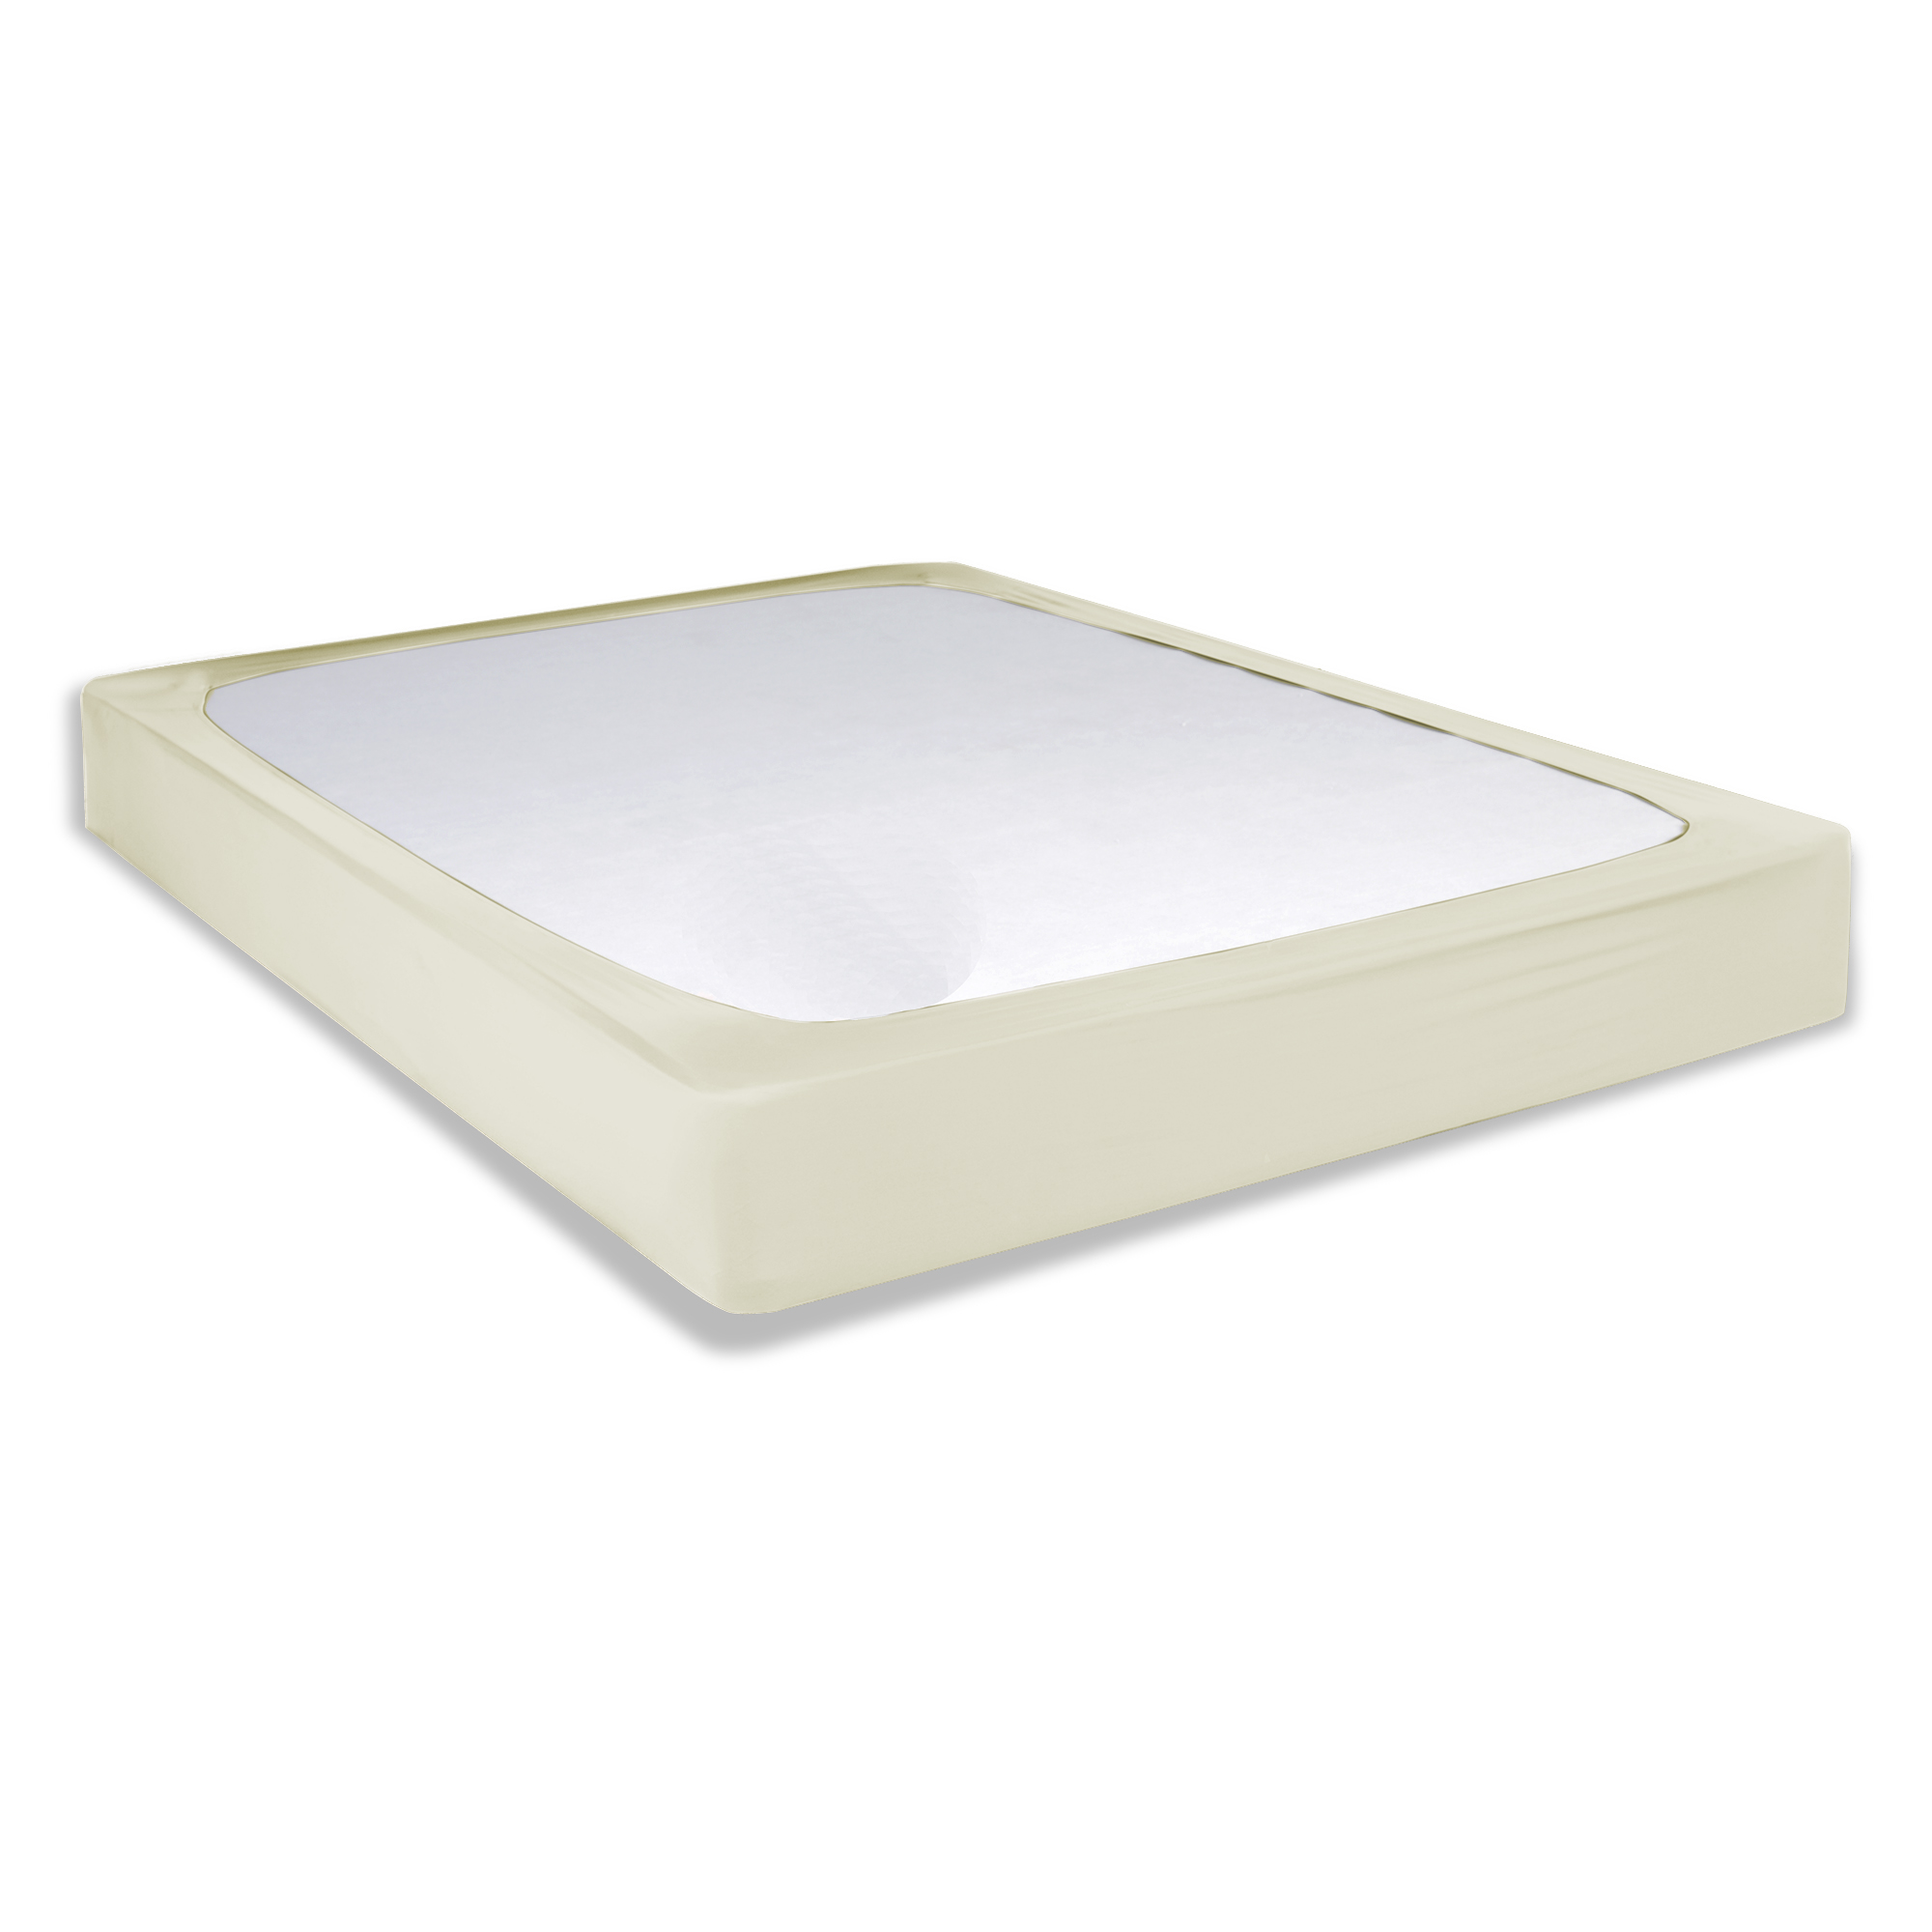 Sleep Plush + Ivory Fabric Box Spring Cover, Queen